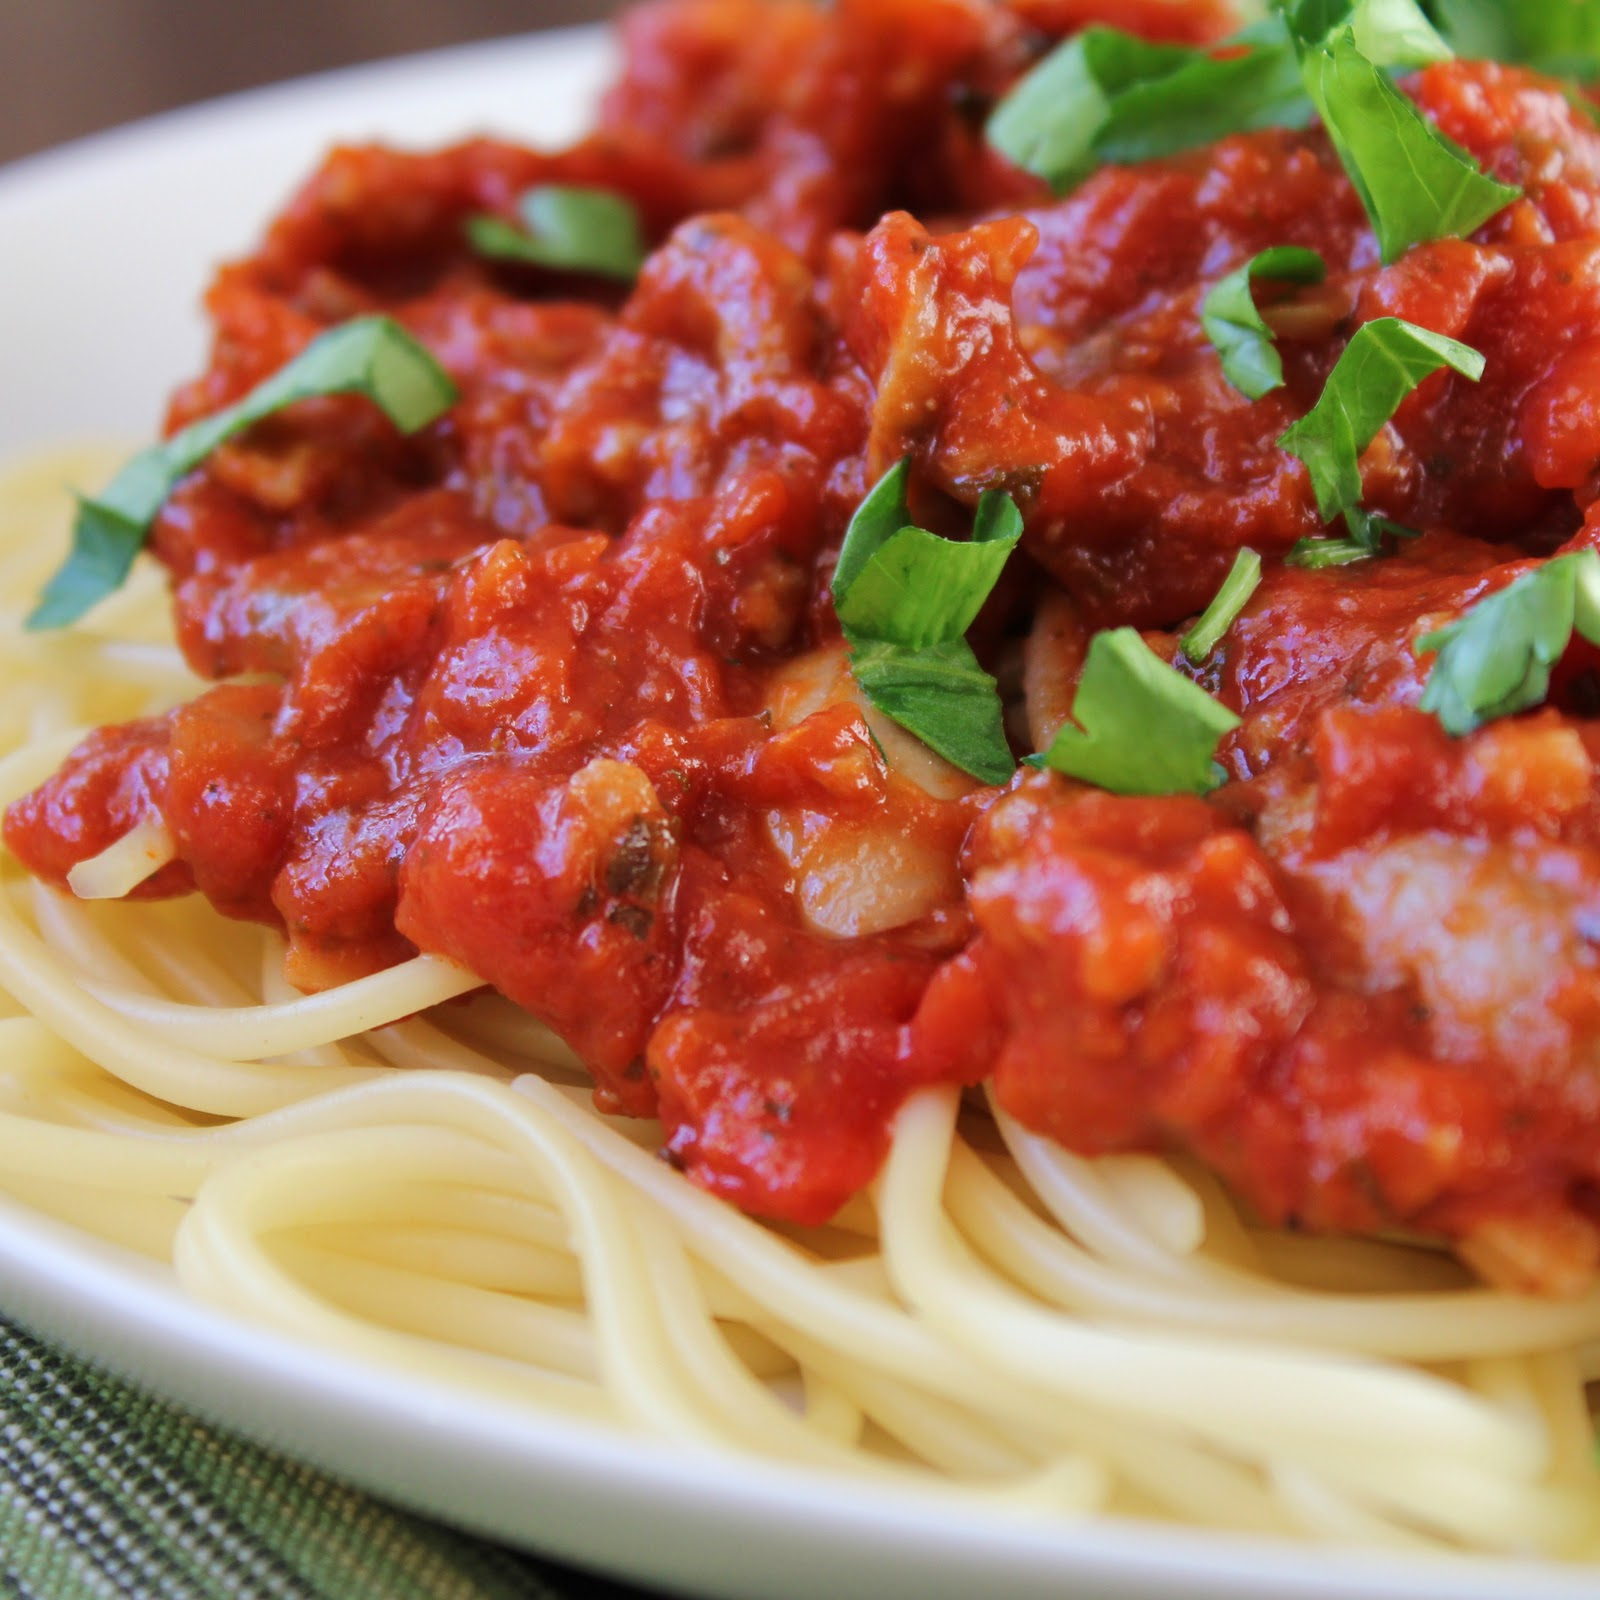 New Year's Spaghetti Dinner – Delicious as it Looks